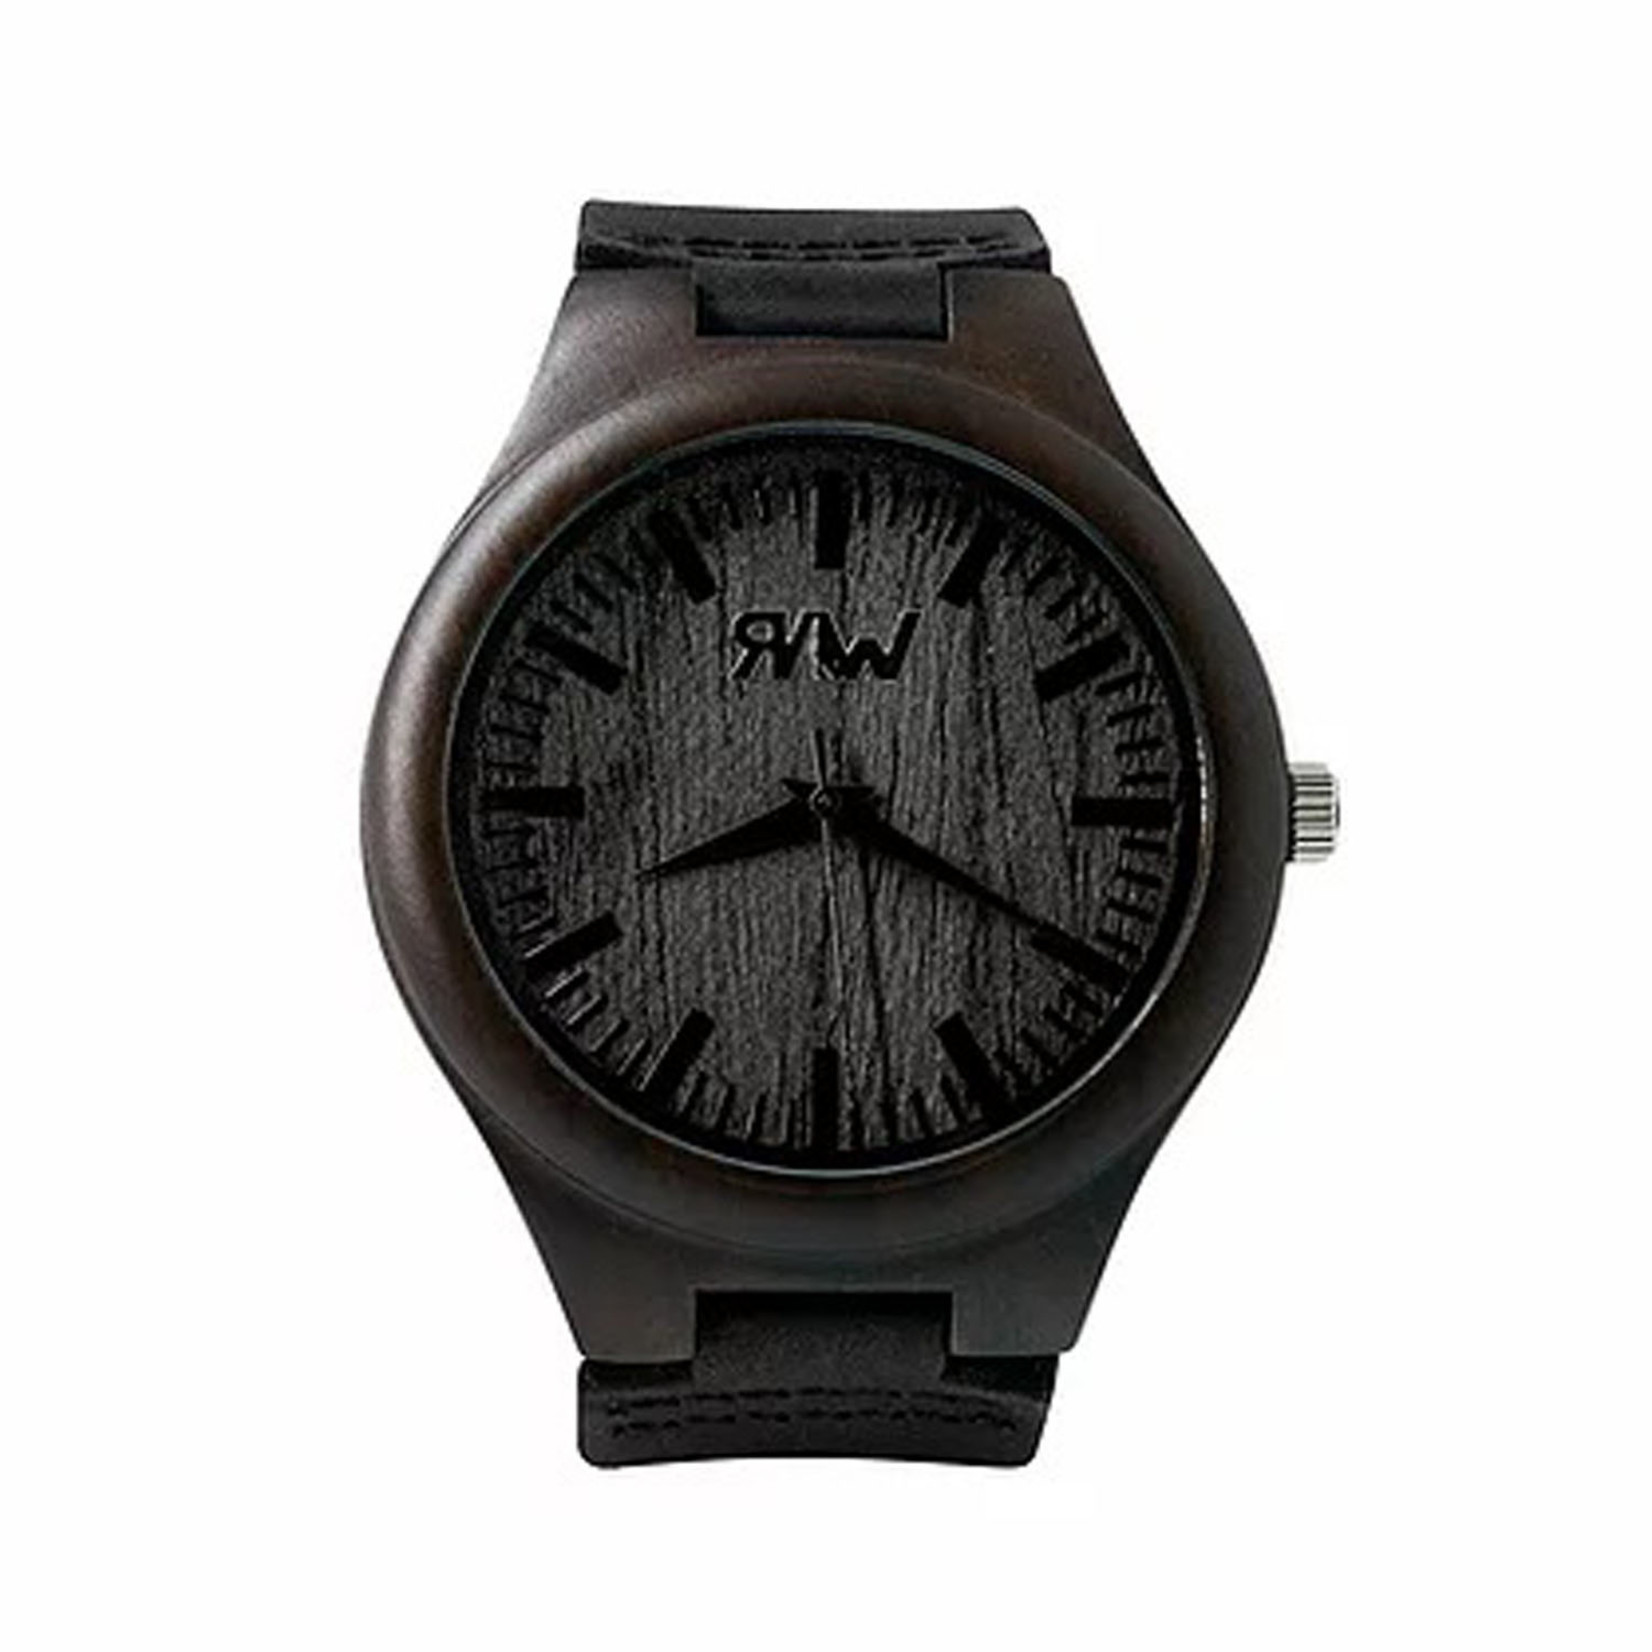 Raw Watches Black Out Watch